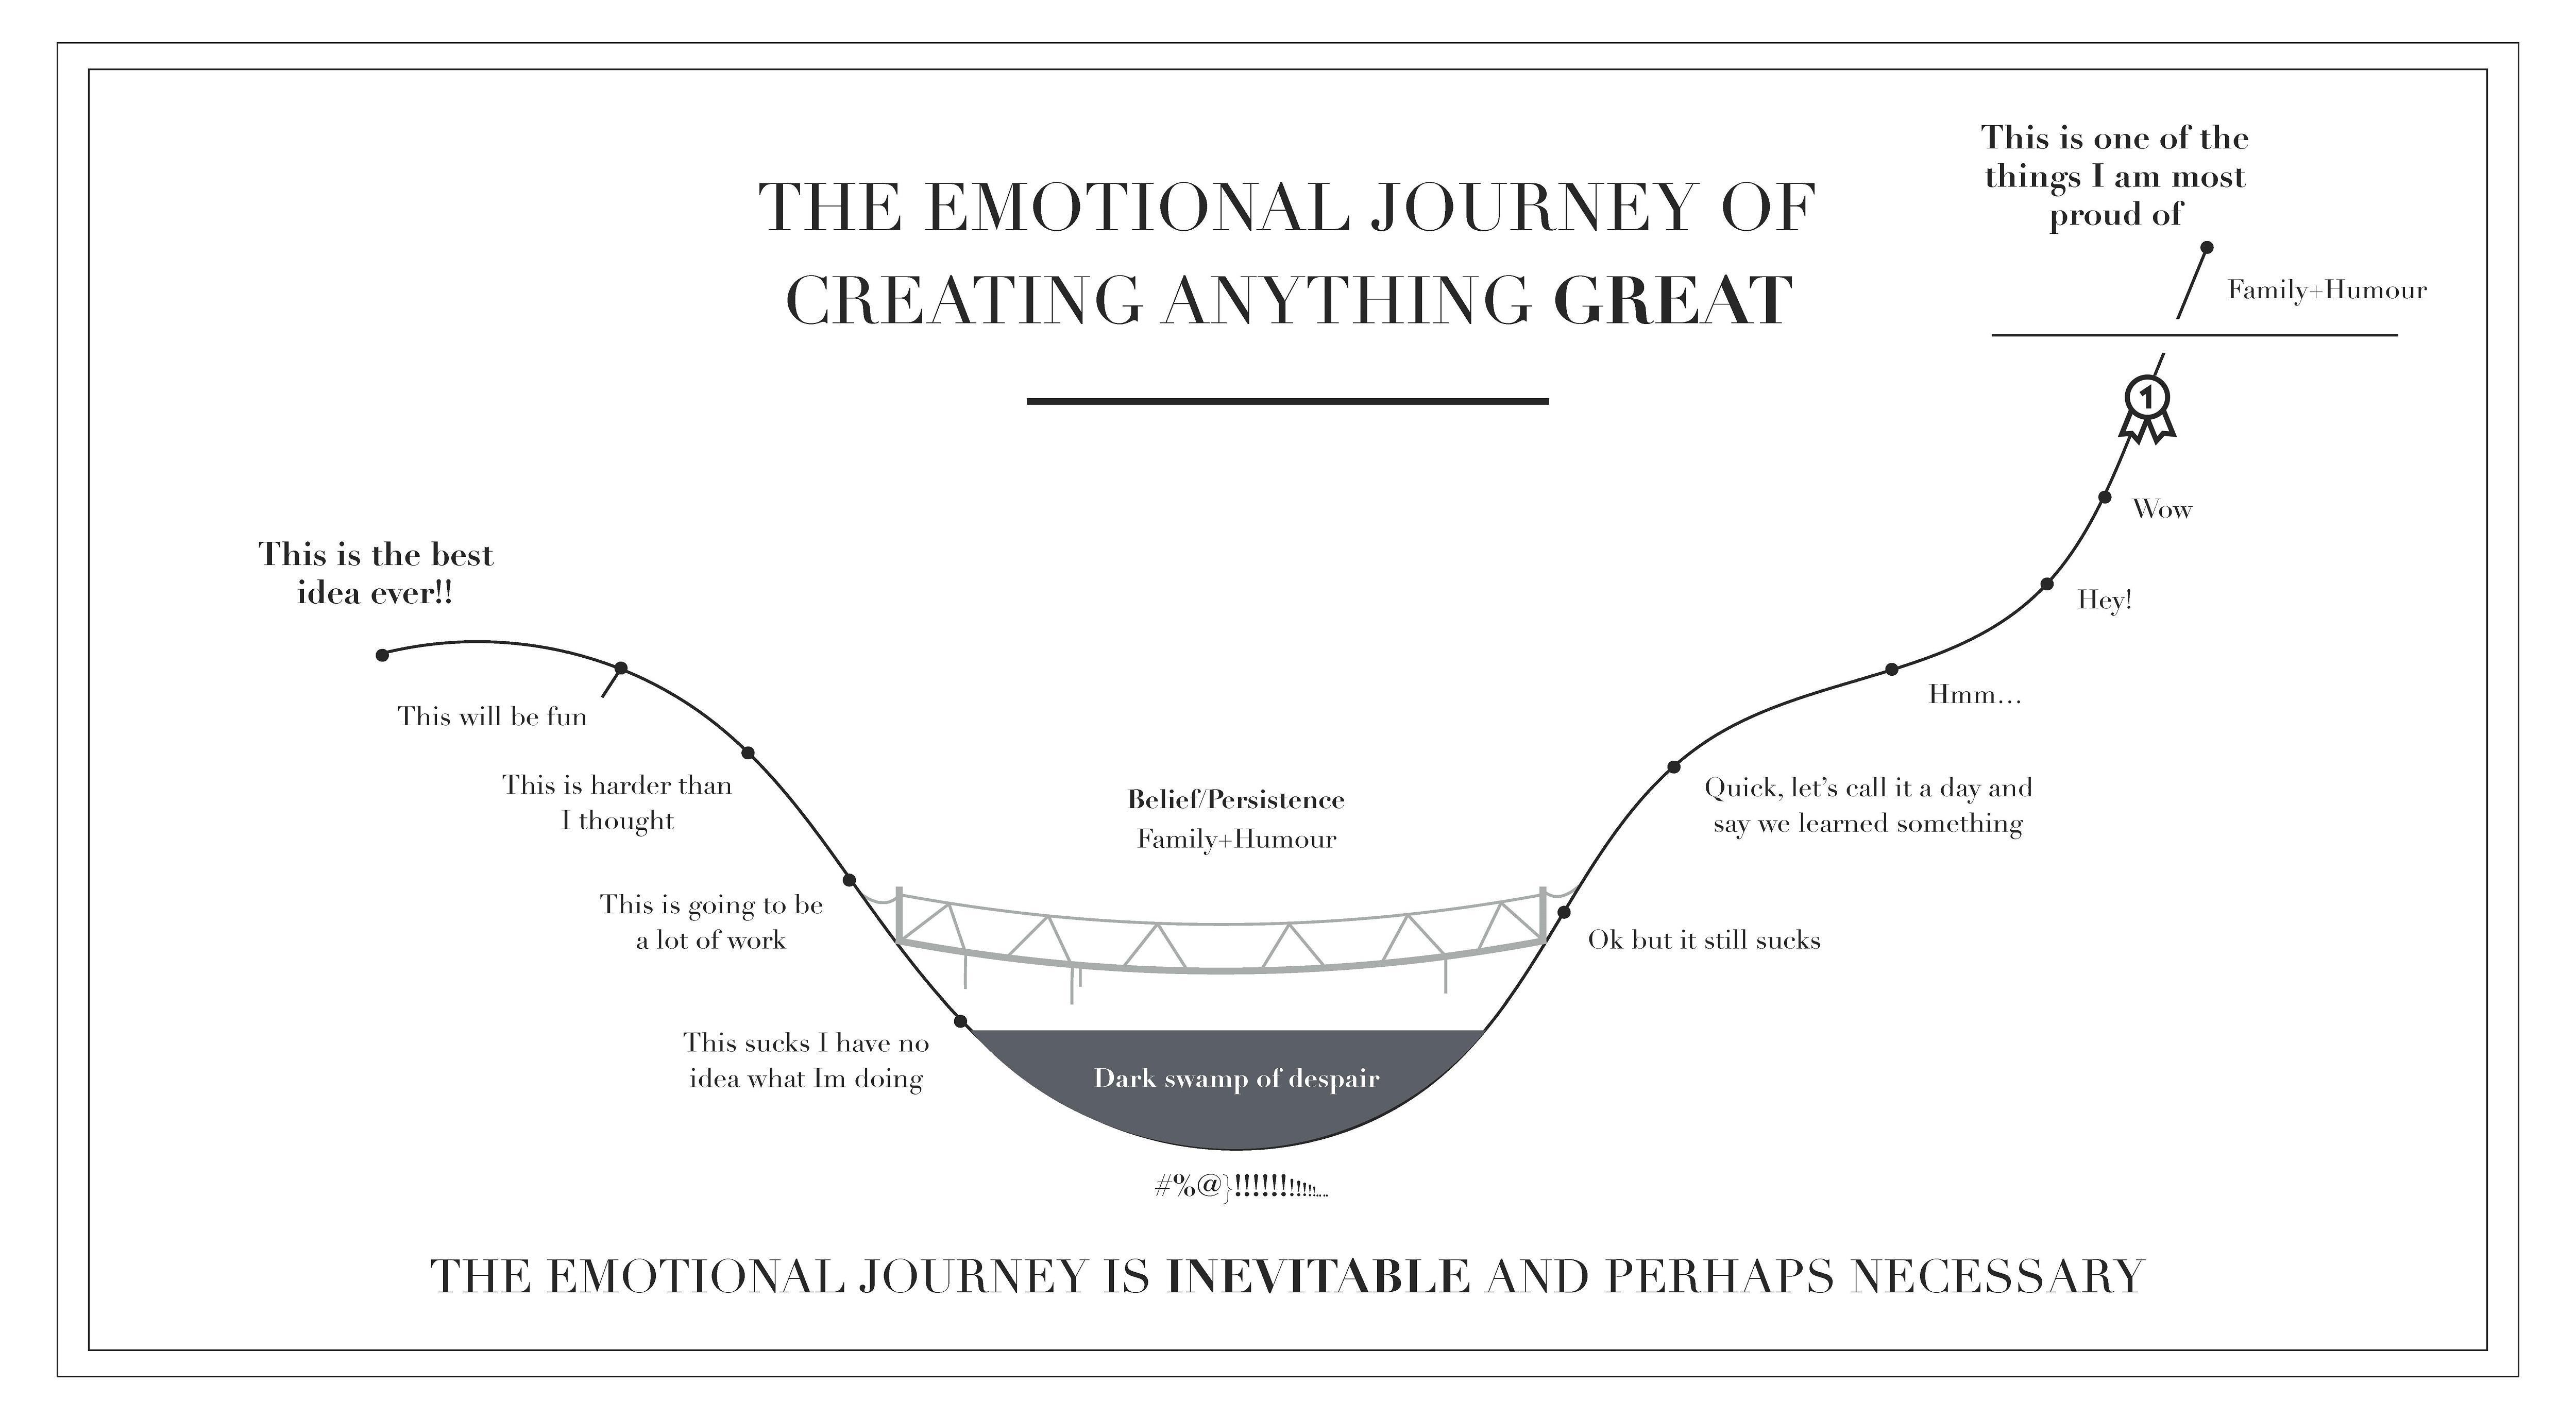 emotional journey of creating anything great infographic large